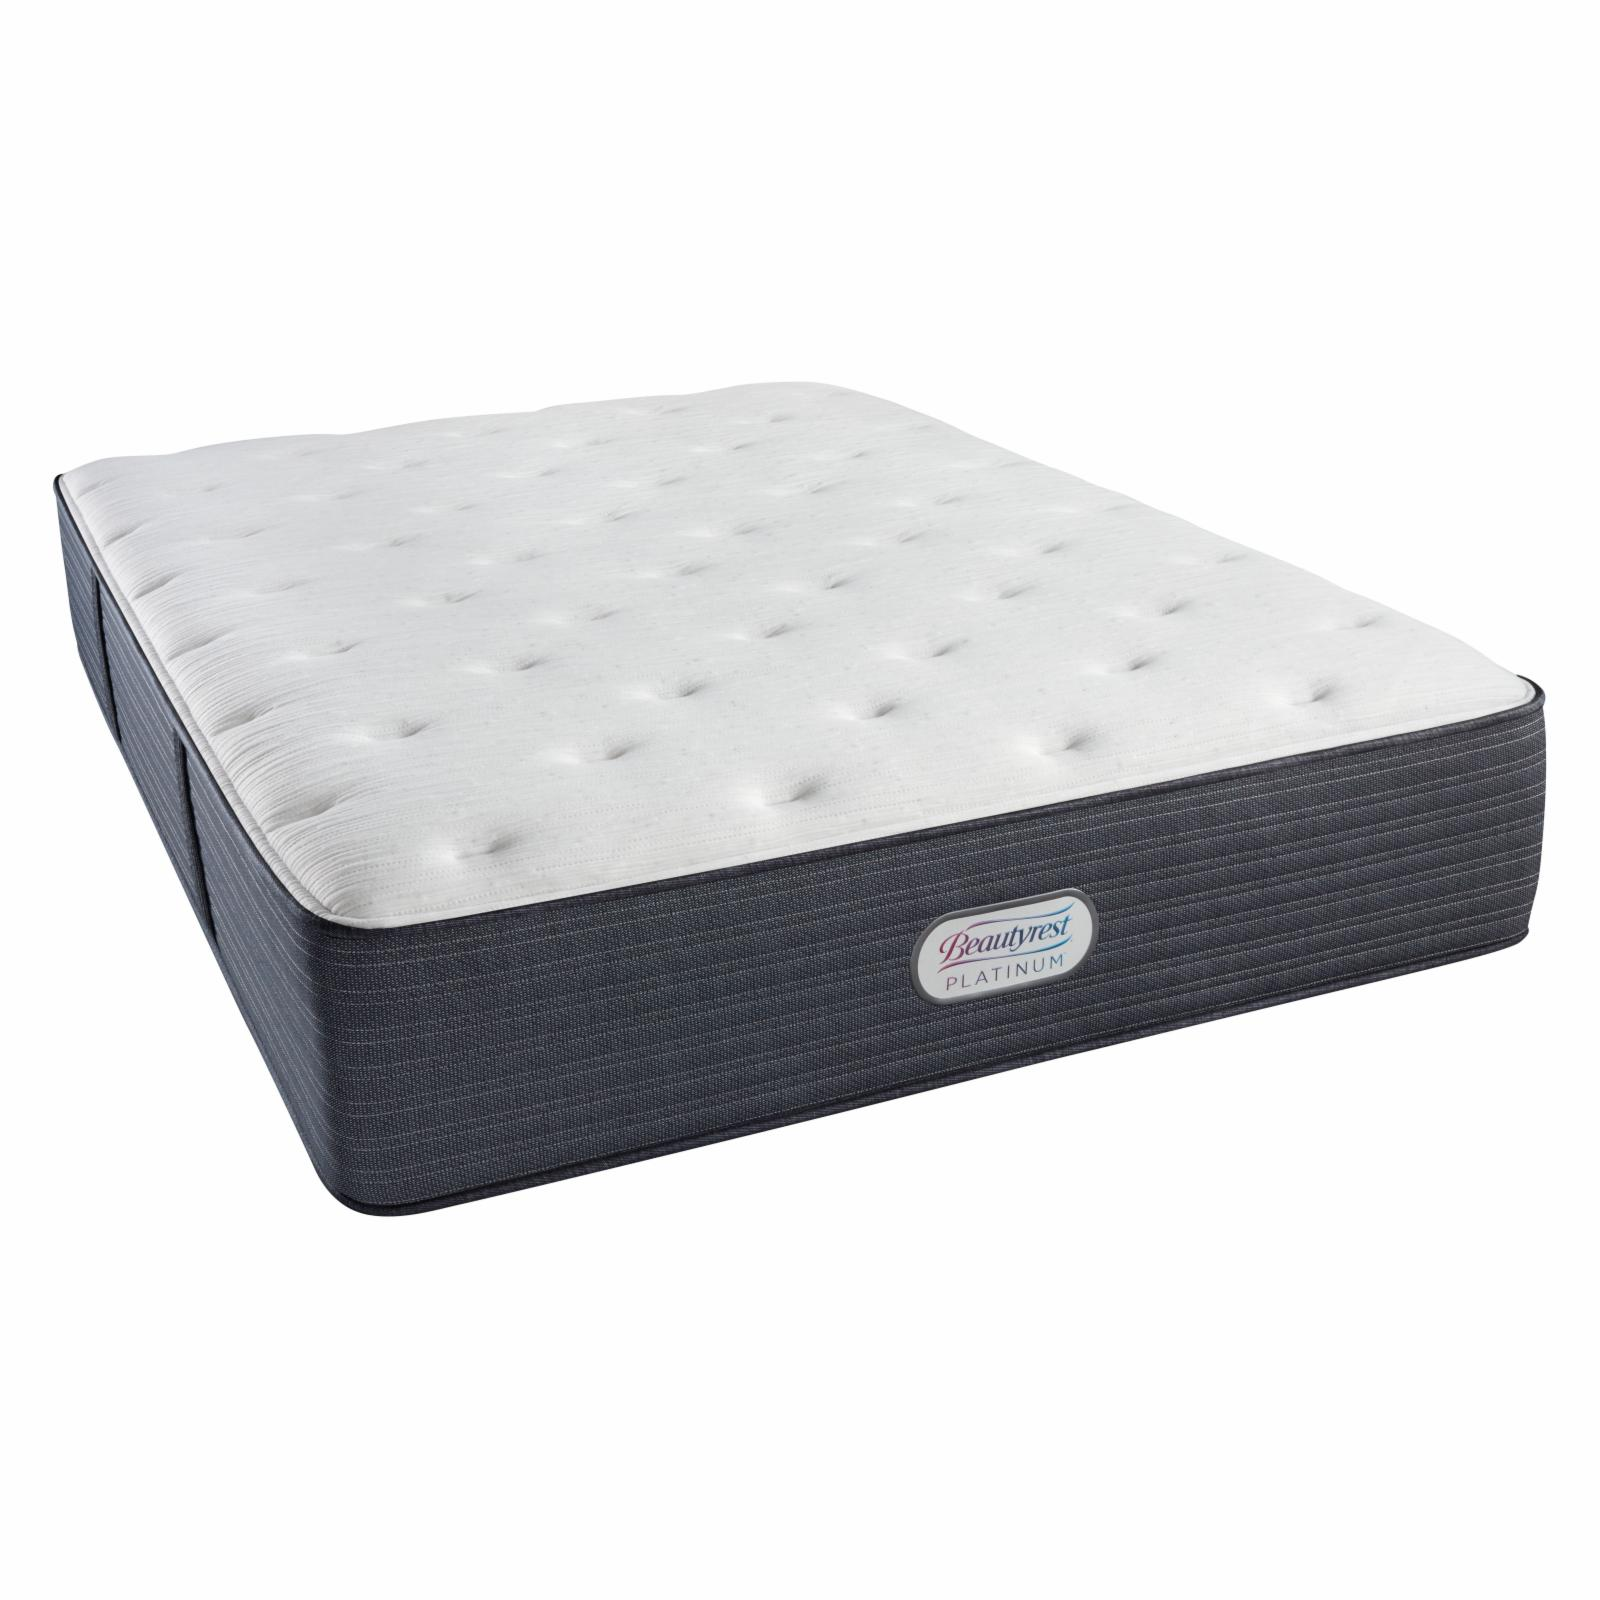 Beautyrest Platinum Jaycrest 12.75 in. Plush Mattress - 700800100-1010